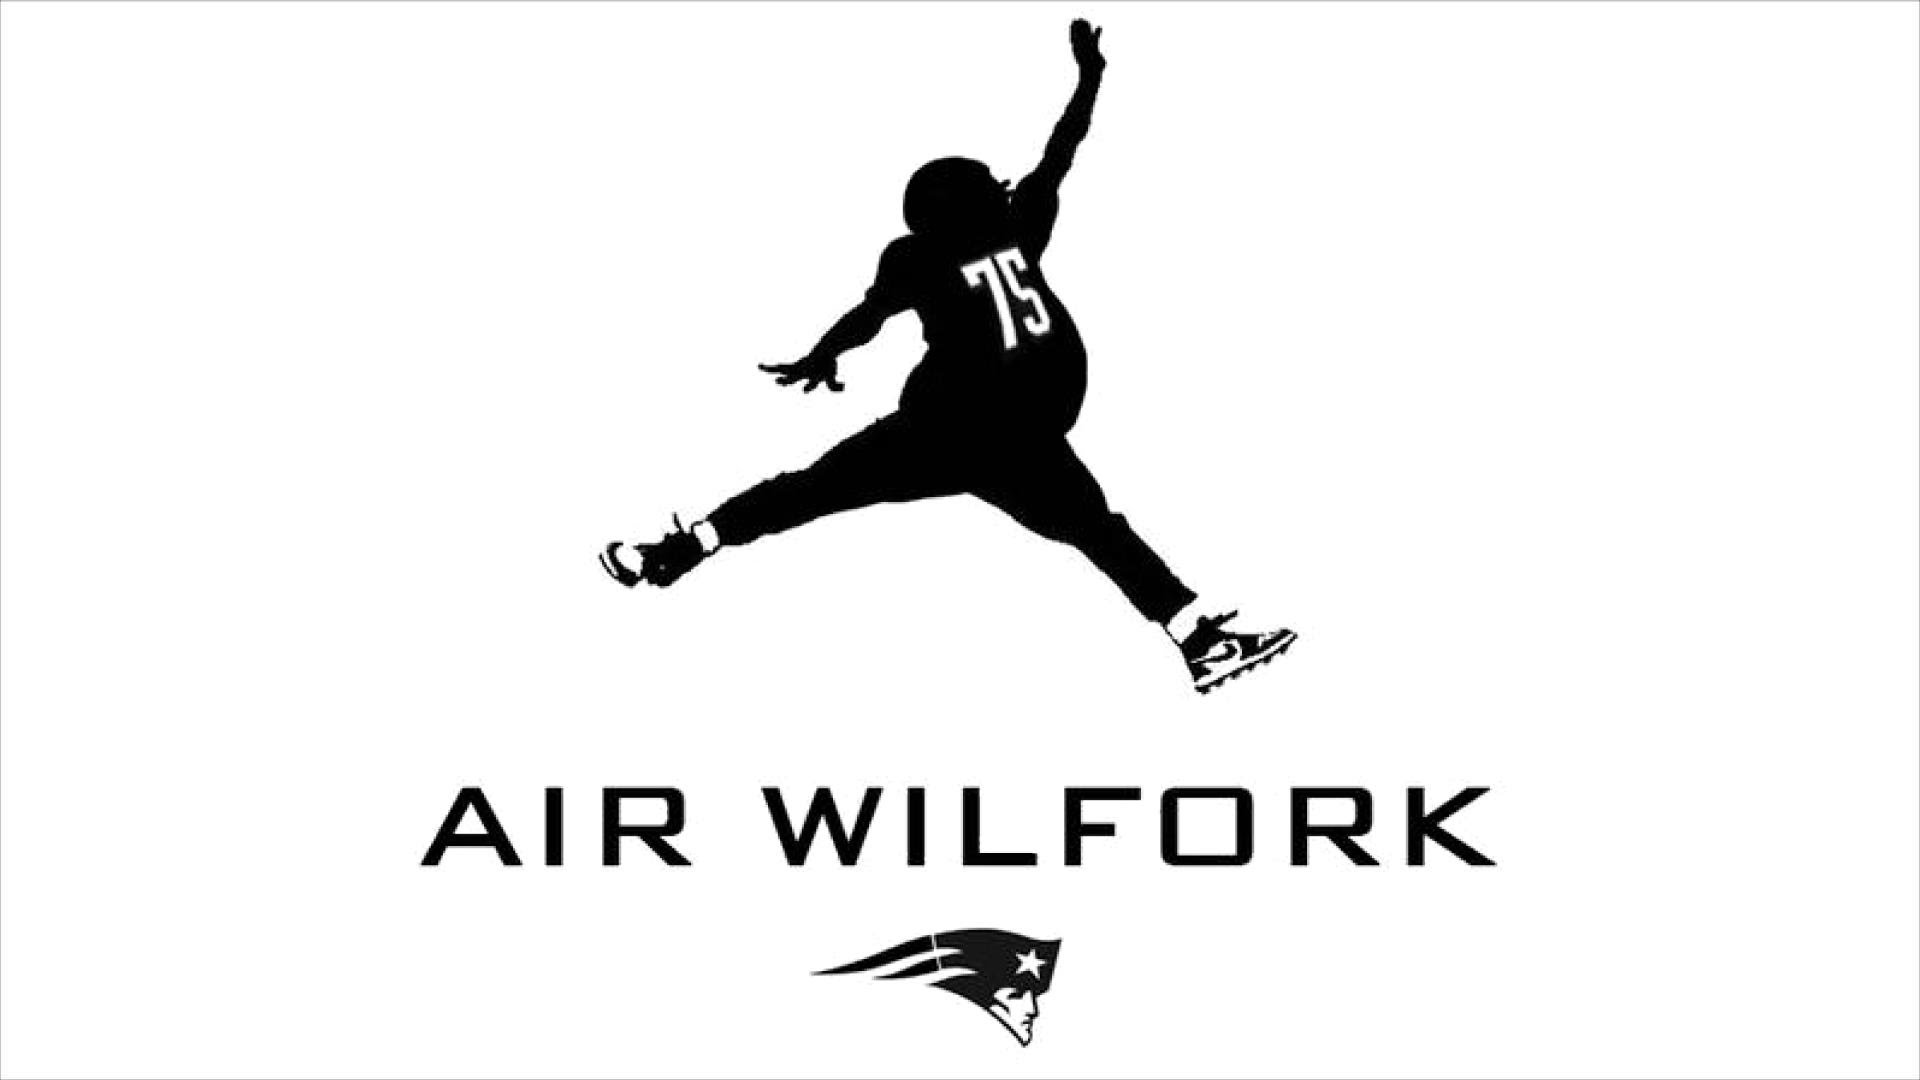 One Of My All Time Favorite Logos Right Up There With The